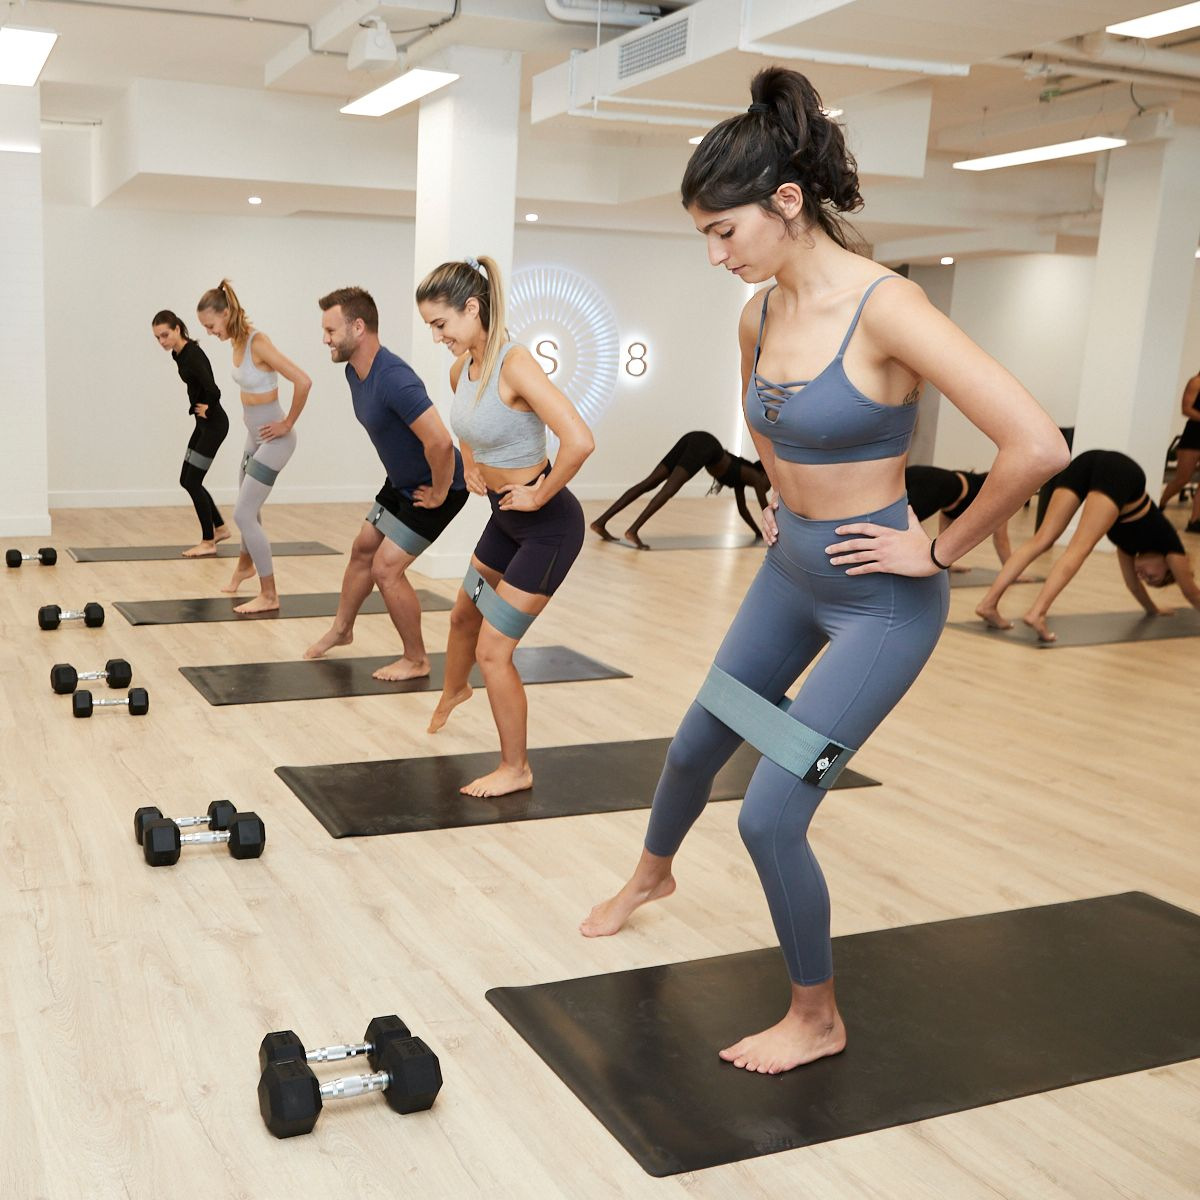 people working out in an fs8 studio